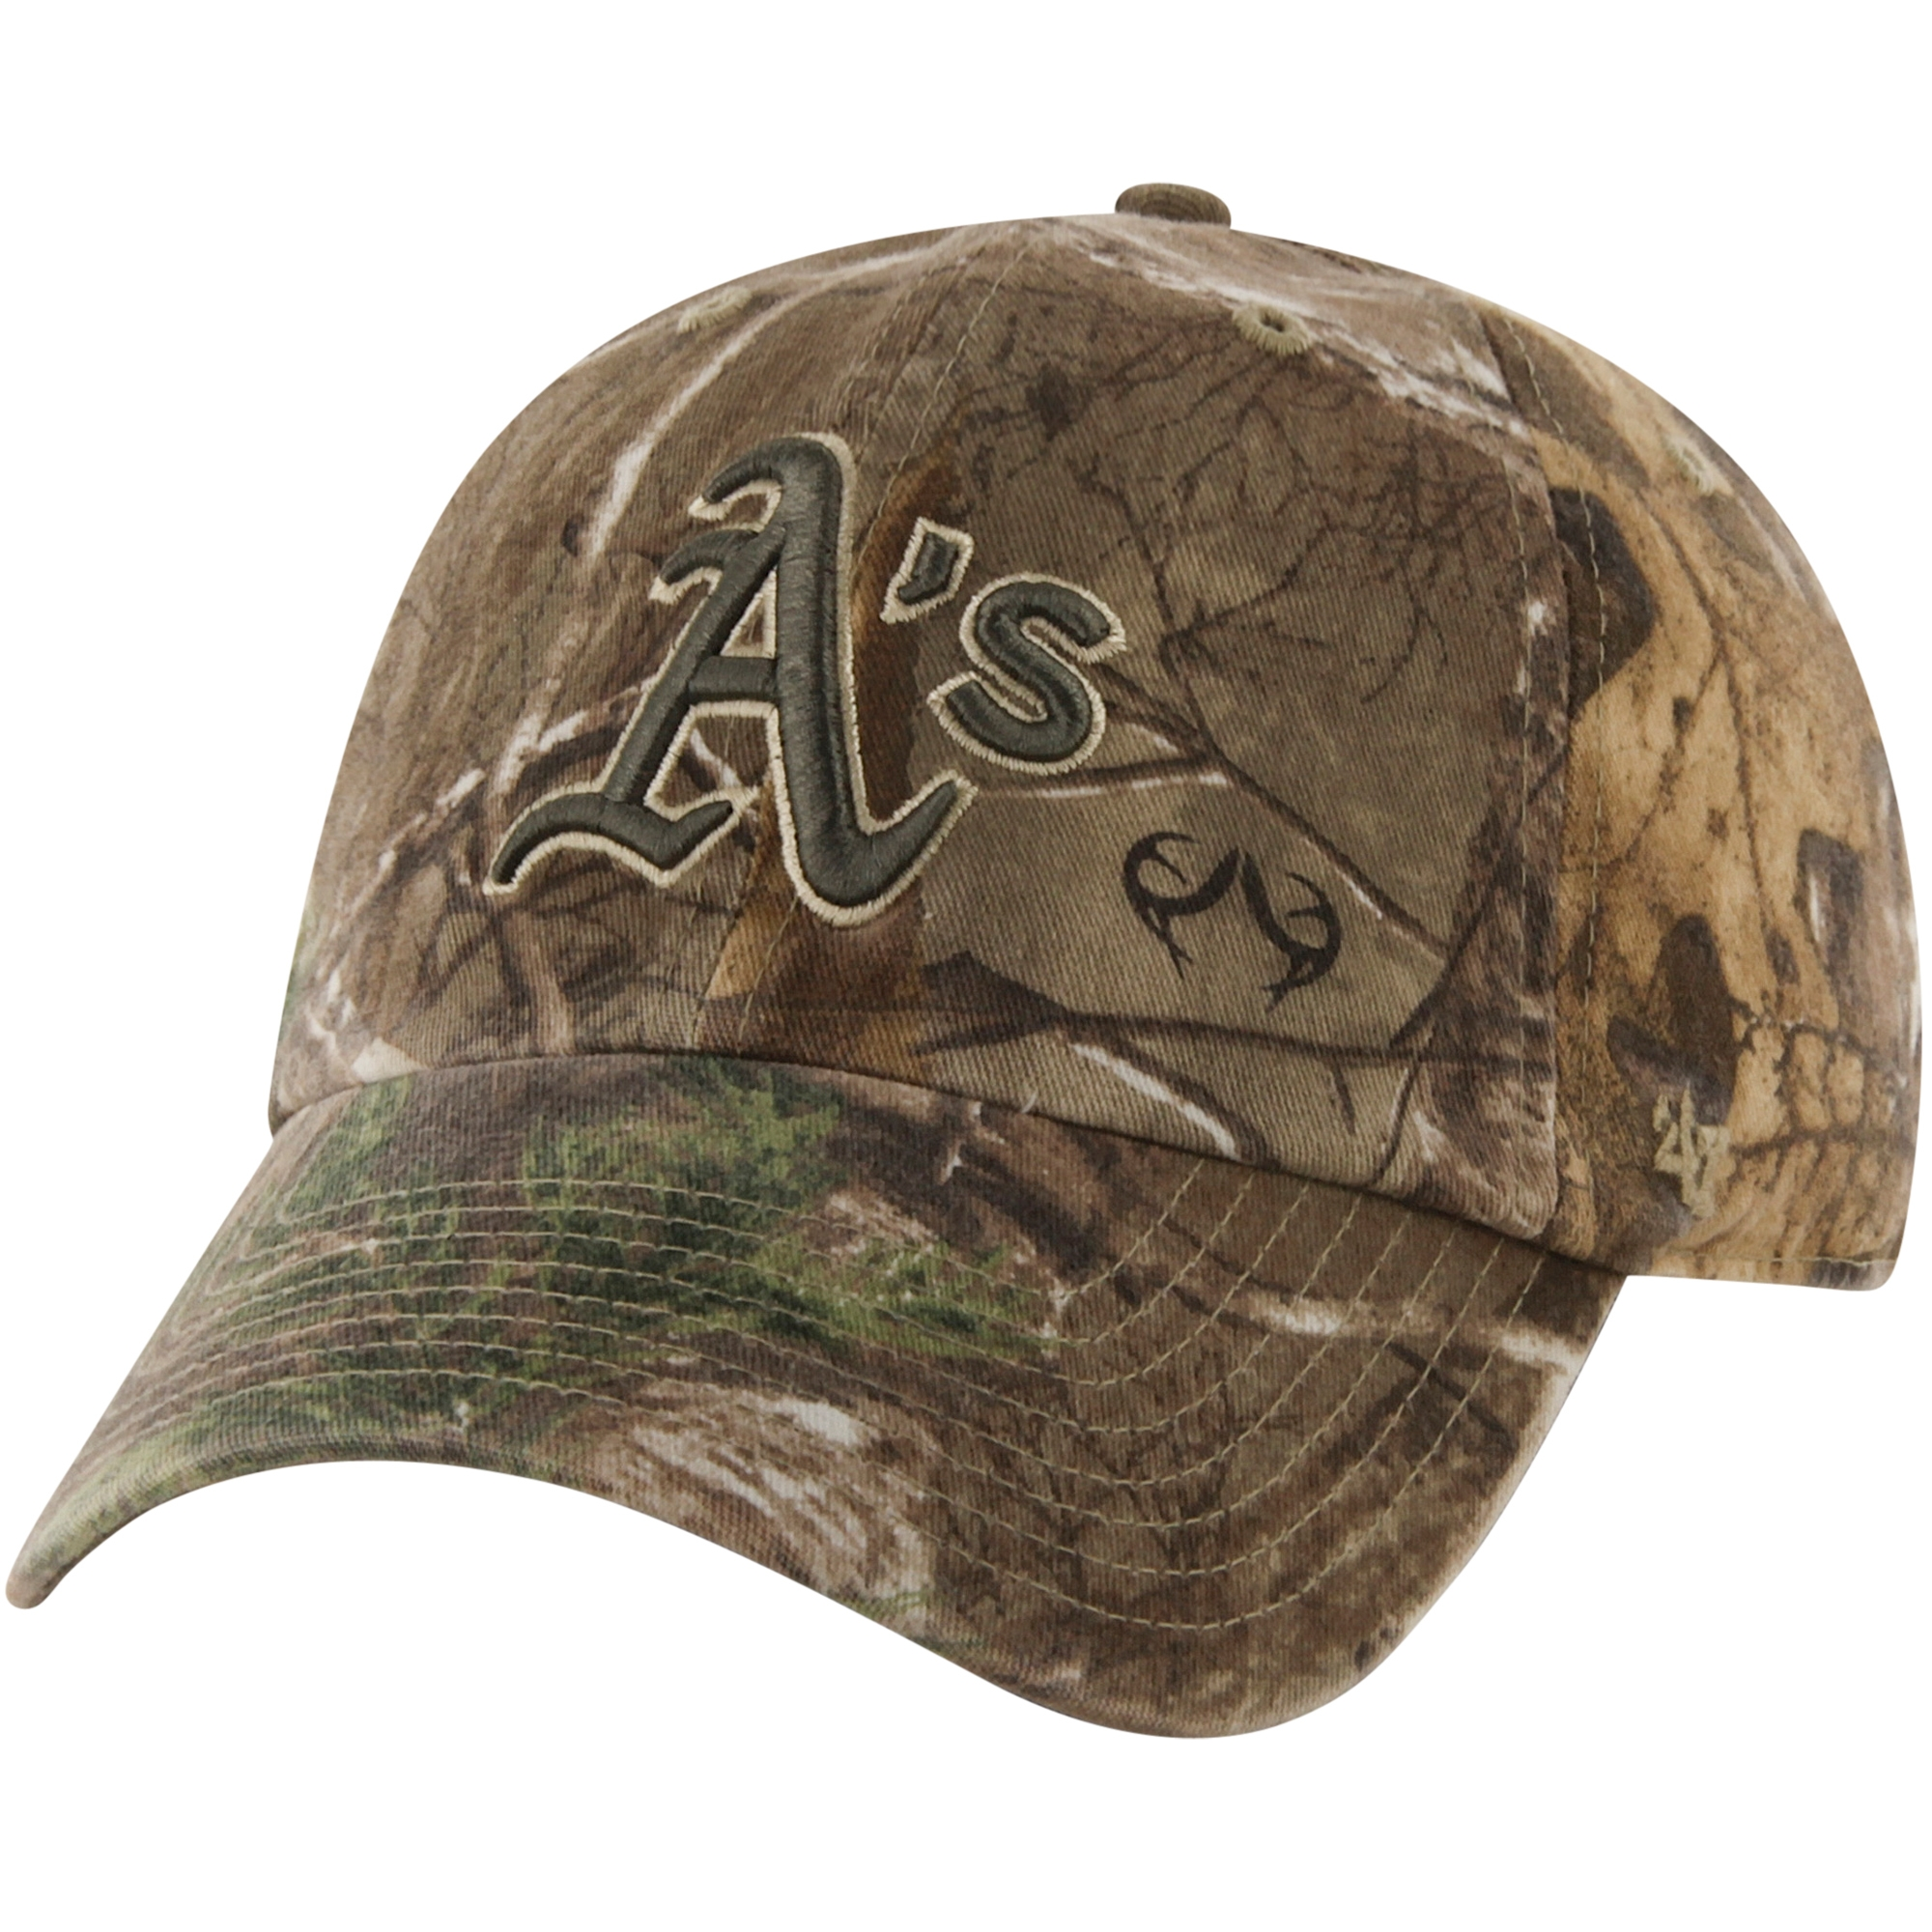 '47 Brand Oakland Athletics Franchise Fitted Hat - Realtree Camo